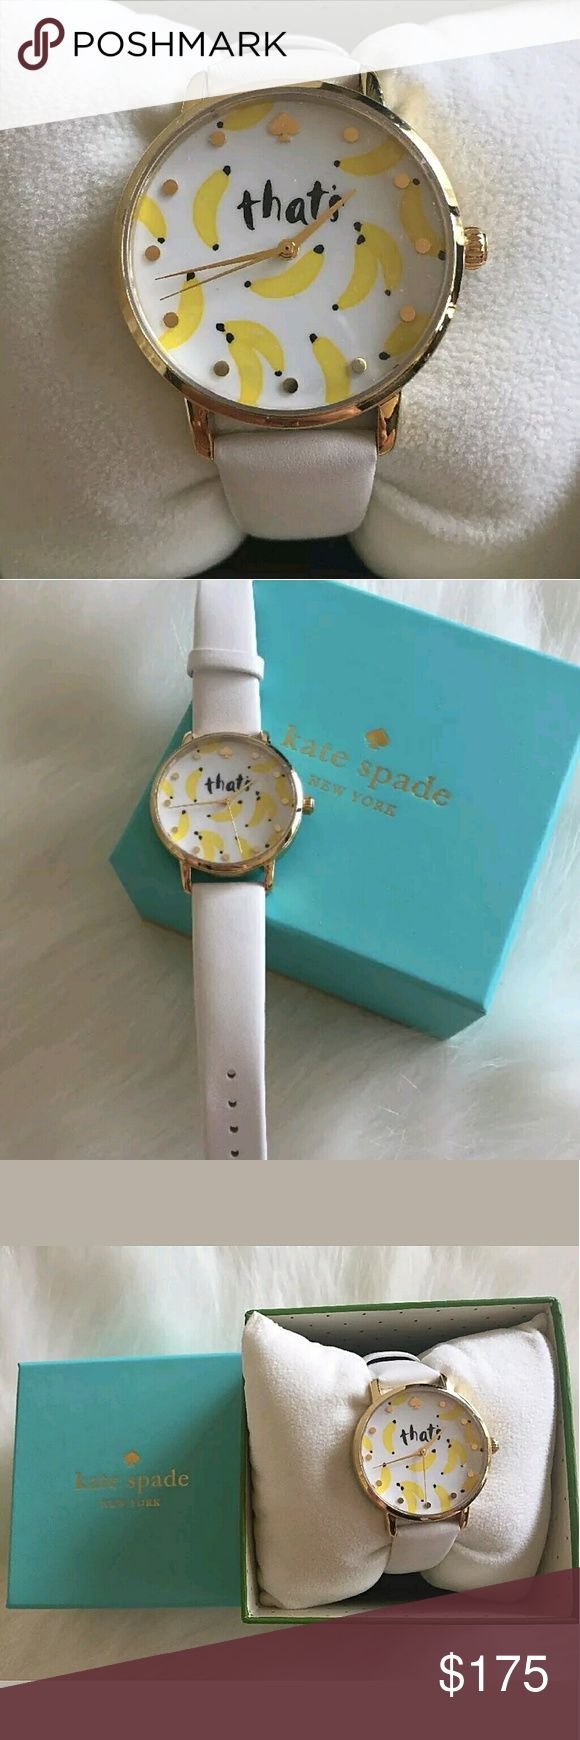 Brand NWT Kate's Spade  Banana Watch Brand NWT Kate's Spade  Banana Watch   Firm price firm price firm price  $175.00 . AUTHENTIC WATCH  . AUTHENTIC BOX  . AUTHENTIC MANUAL    SHIPPING  PLEASE ALLOW FEW BUSINESS DAYS FOR ME TO SHIPPED IT OFF.I HAVE TO GET IT FROM MY STORE.   THANK YOU FOR YOUR UNDERSTANDING. kate spade Accessories Watches